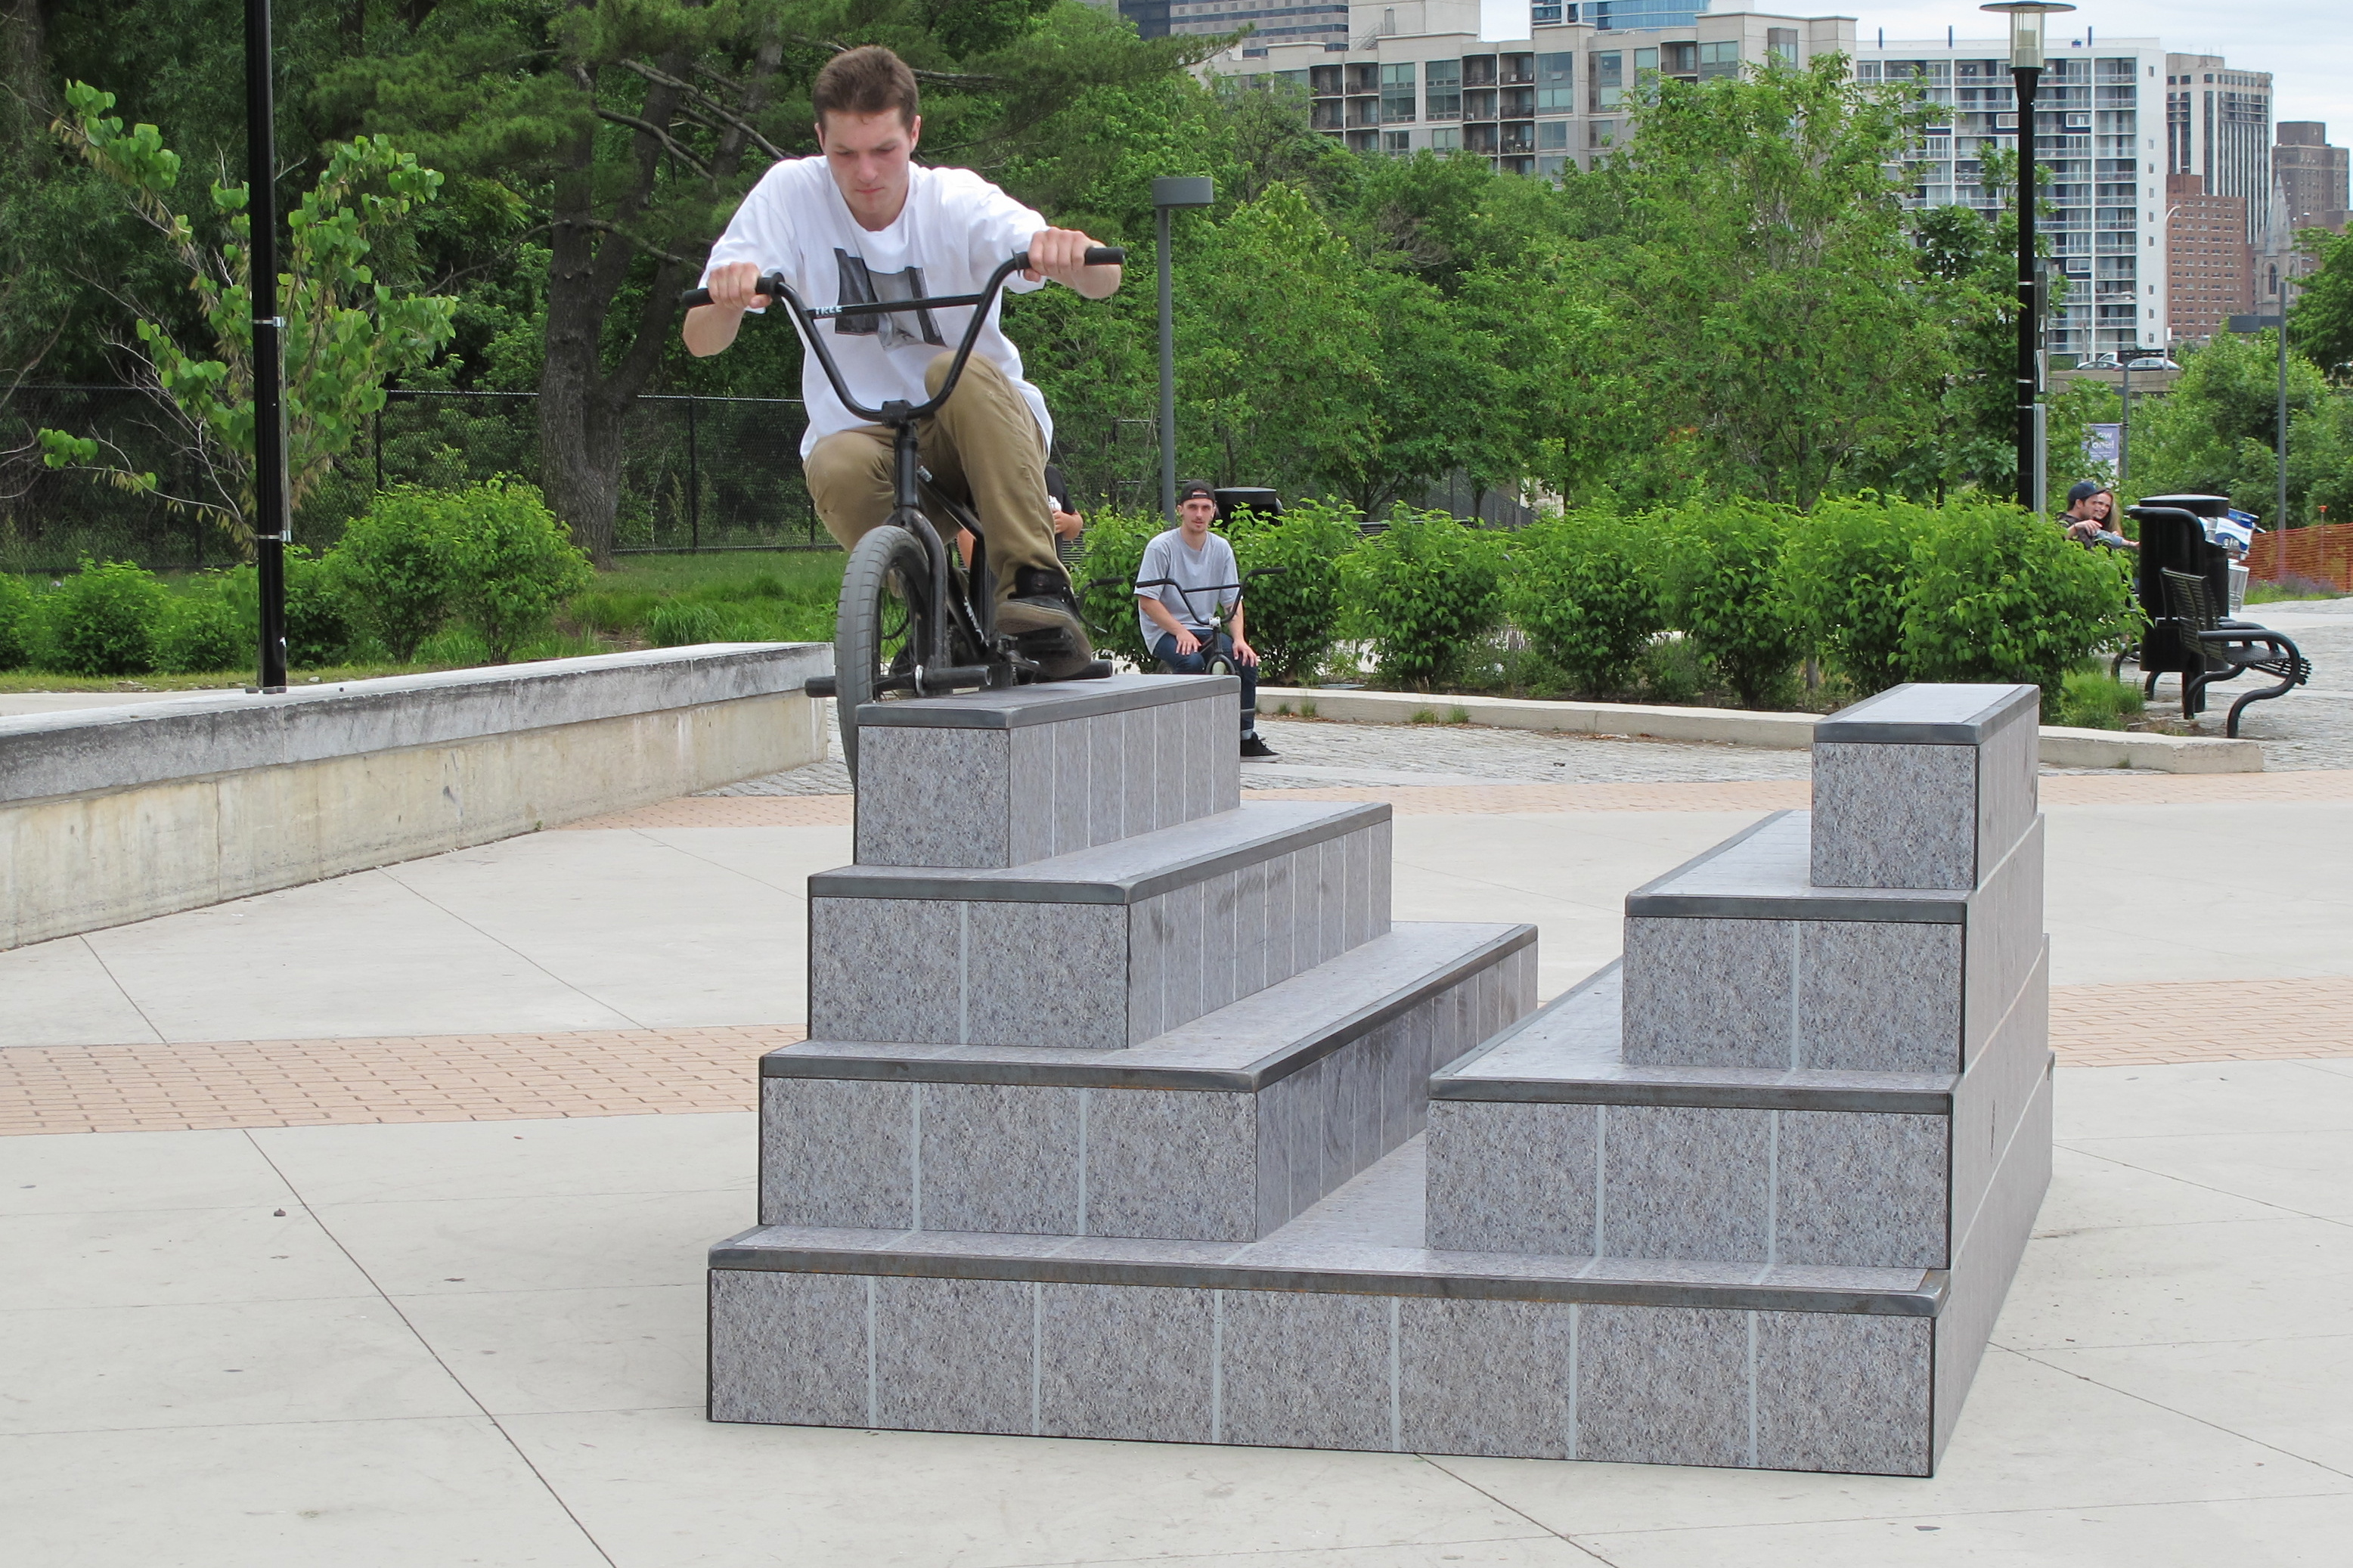 'Steps' might be more inviting for BMX riders | Ashley Hahn, PlanPhilly